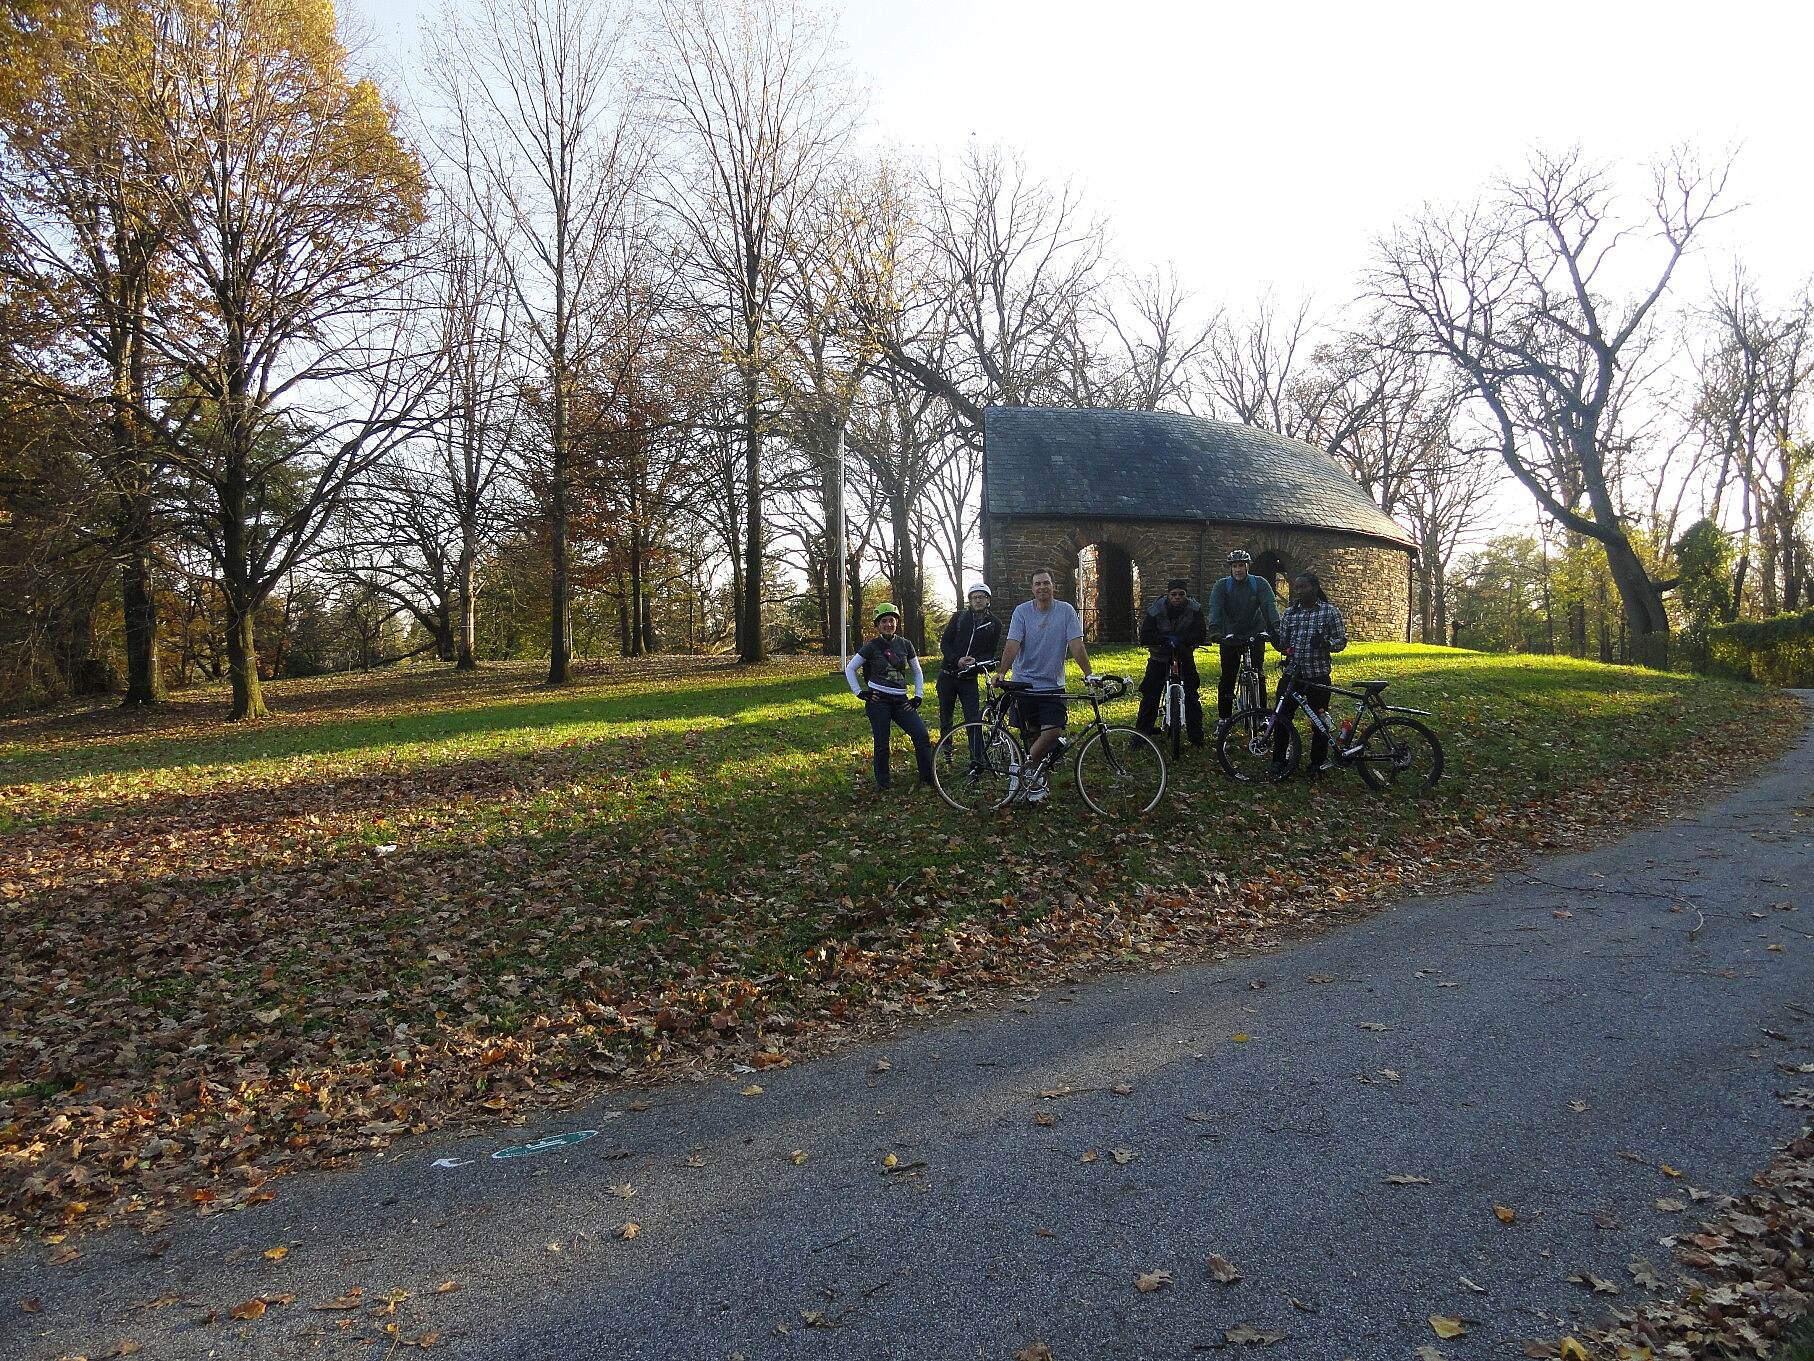 Jones Falls Trail U of Baltimore group Group of riders from the University of Baltimore at the WWI Memorial Grove